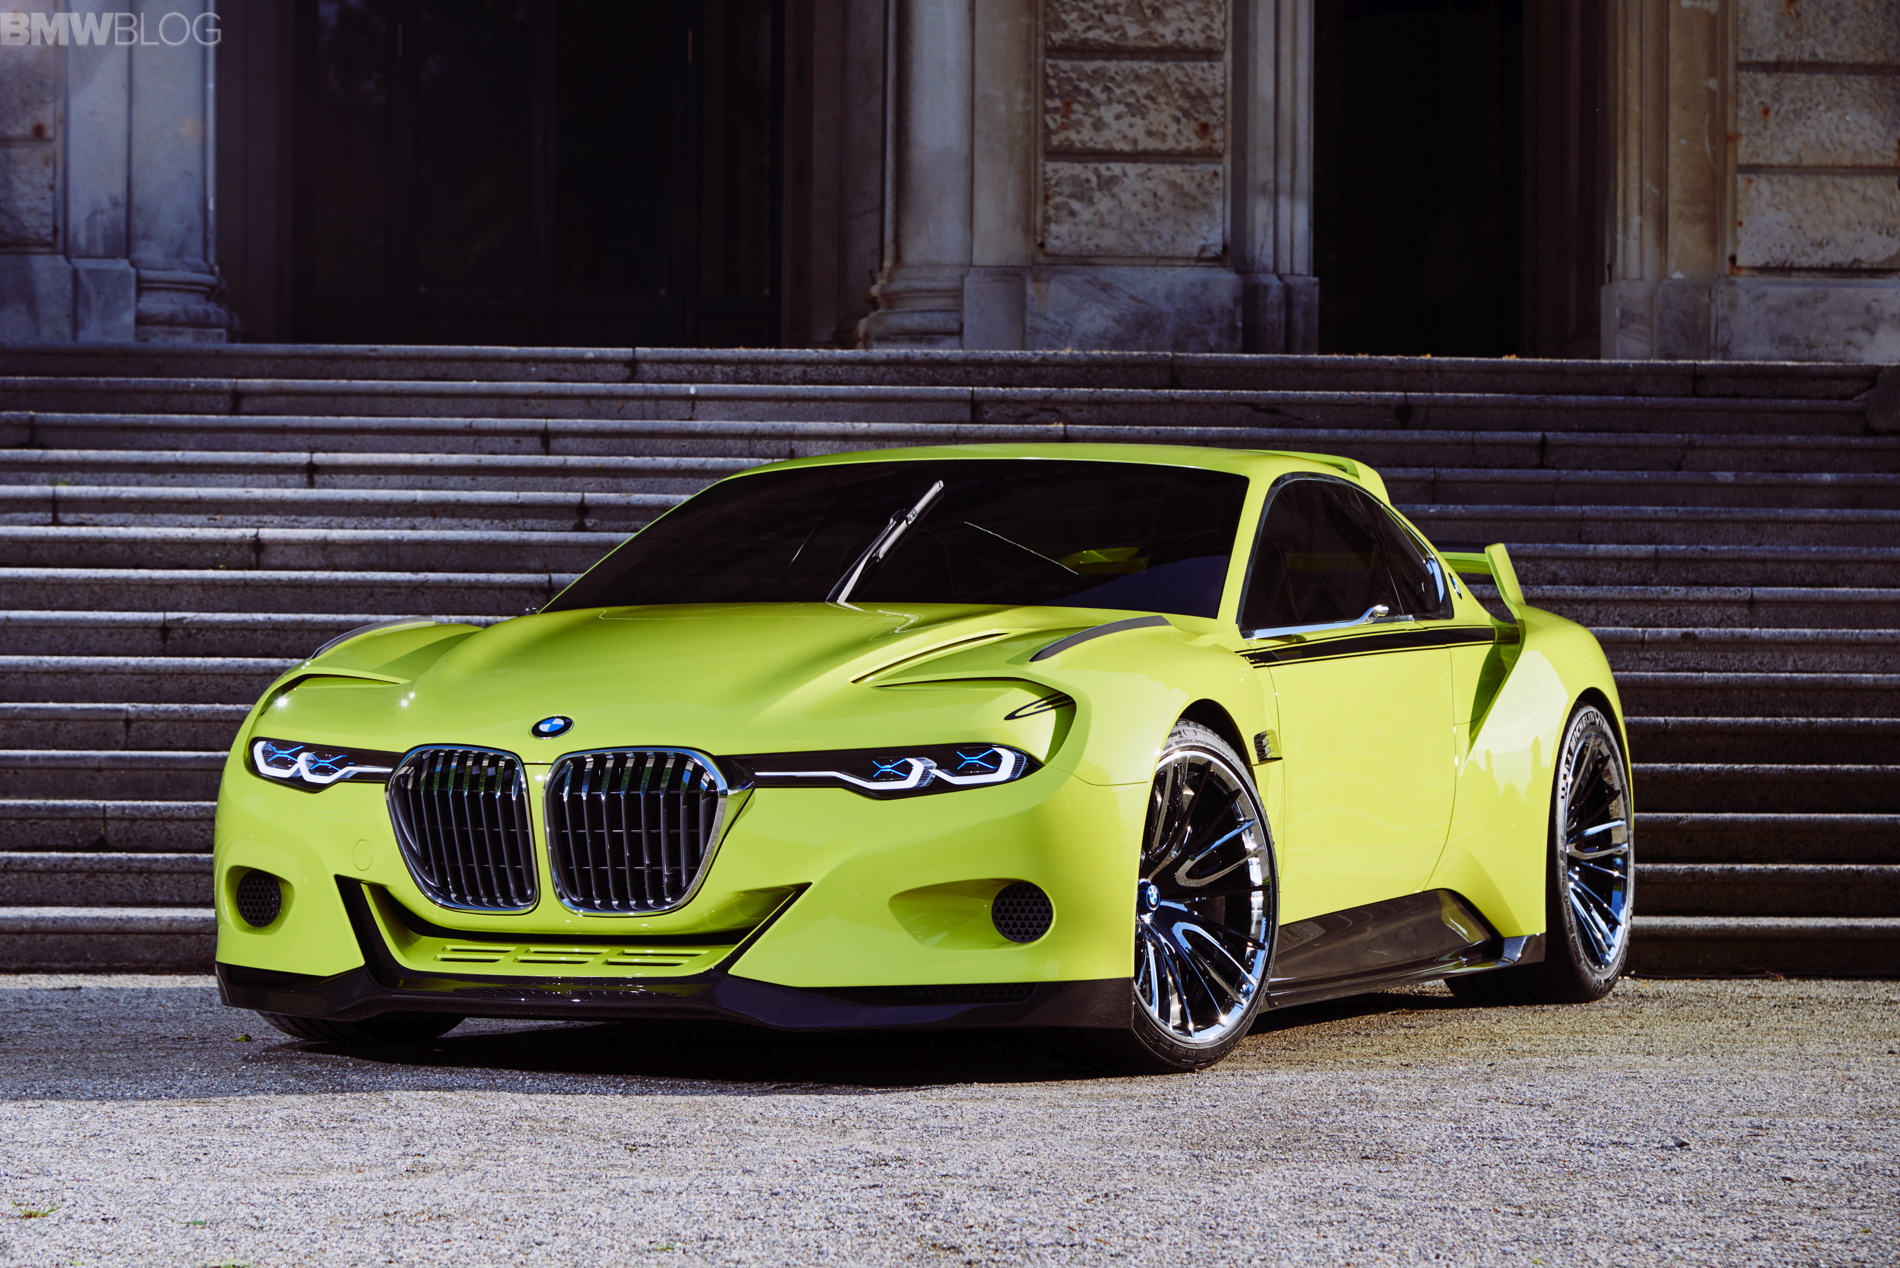 bmw 3 0 csl hommage 1900x1200 wallpapers 32